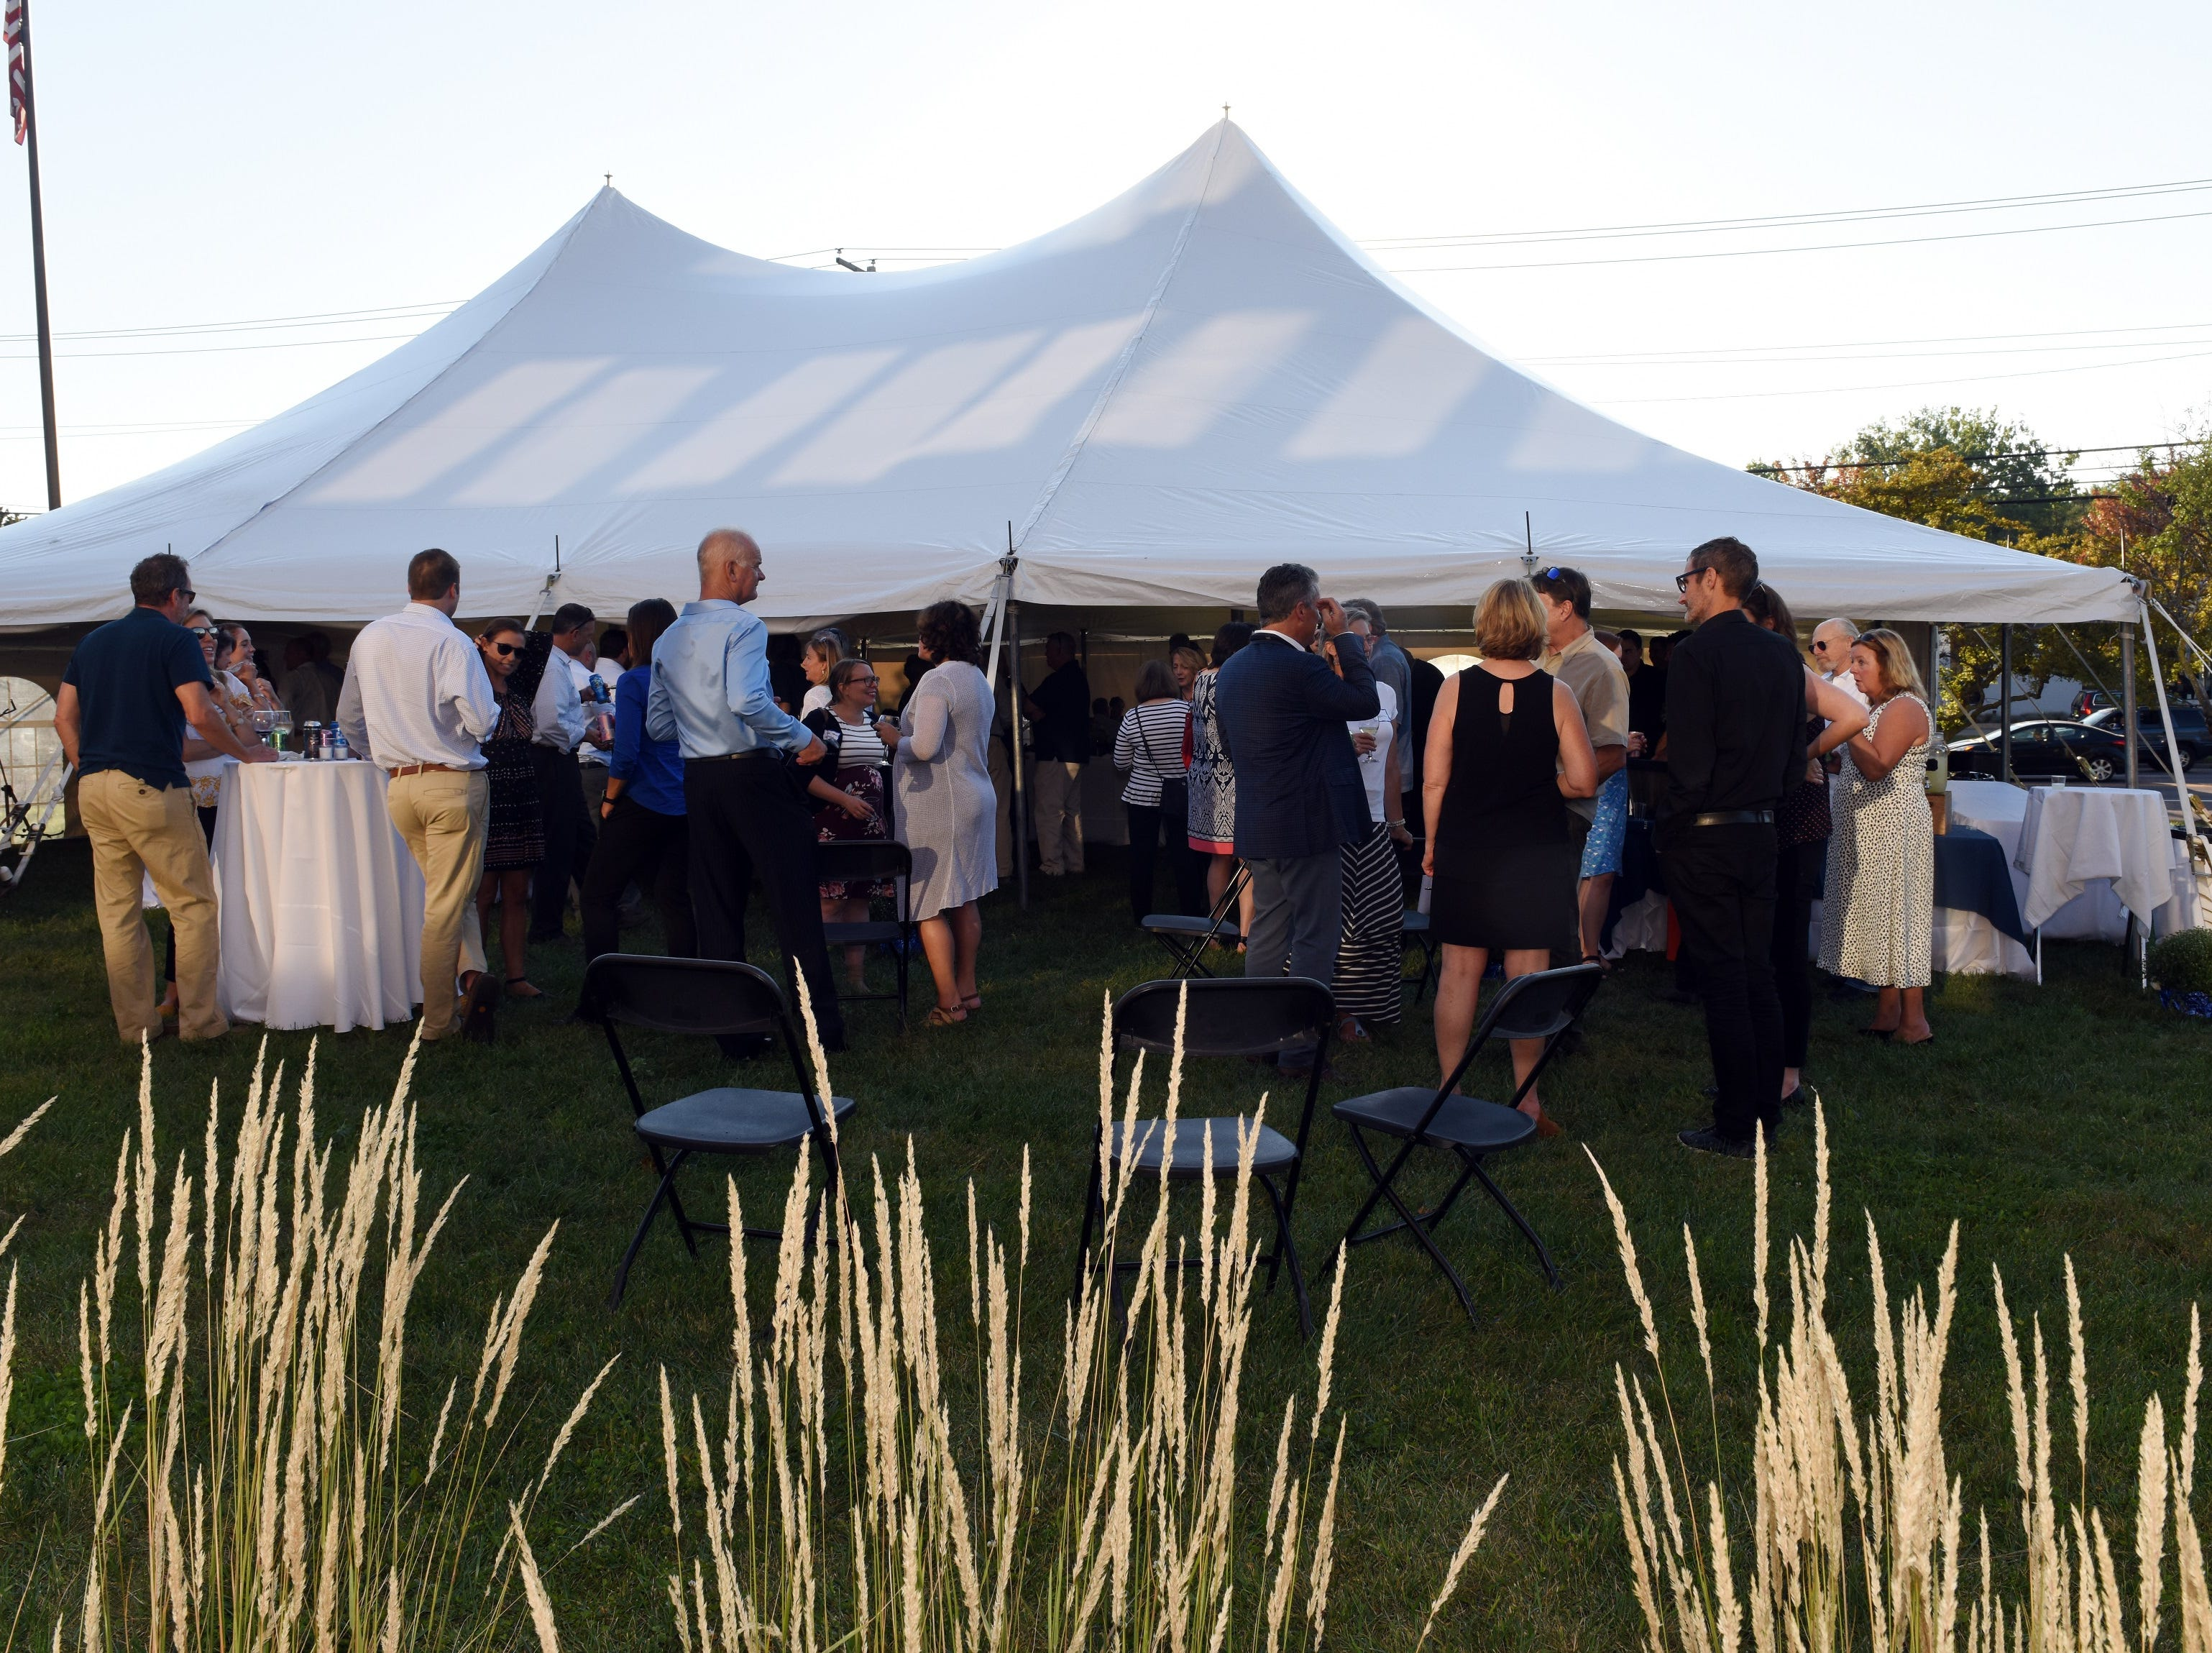 Perfect evening to celebrate the 60th Anniversary of Coldwell Banker Hickok & Boardman Realty's 60th Anniversary on September 13, 2018, with current and past agents and community leaders in Burlington, VT.